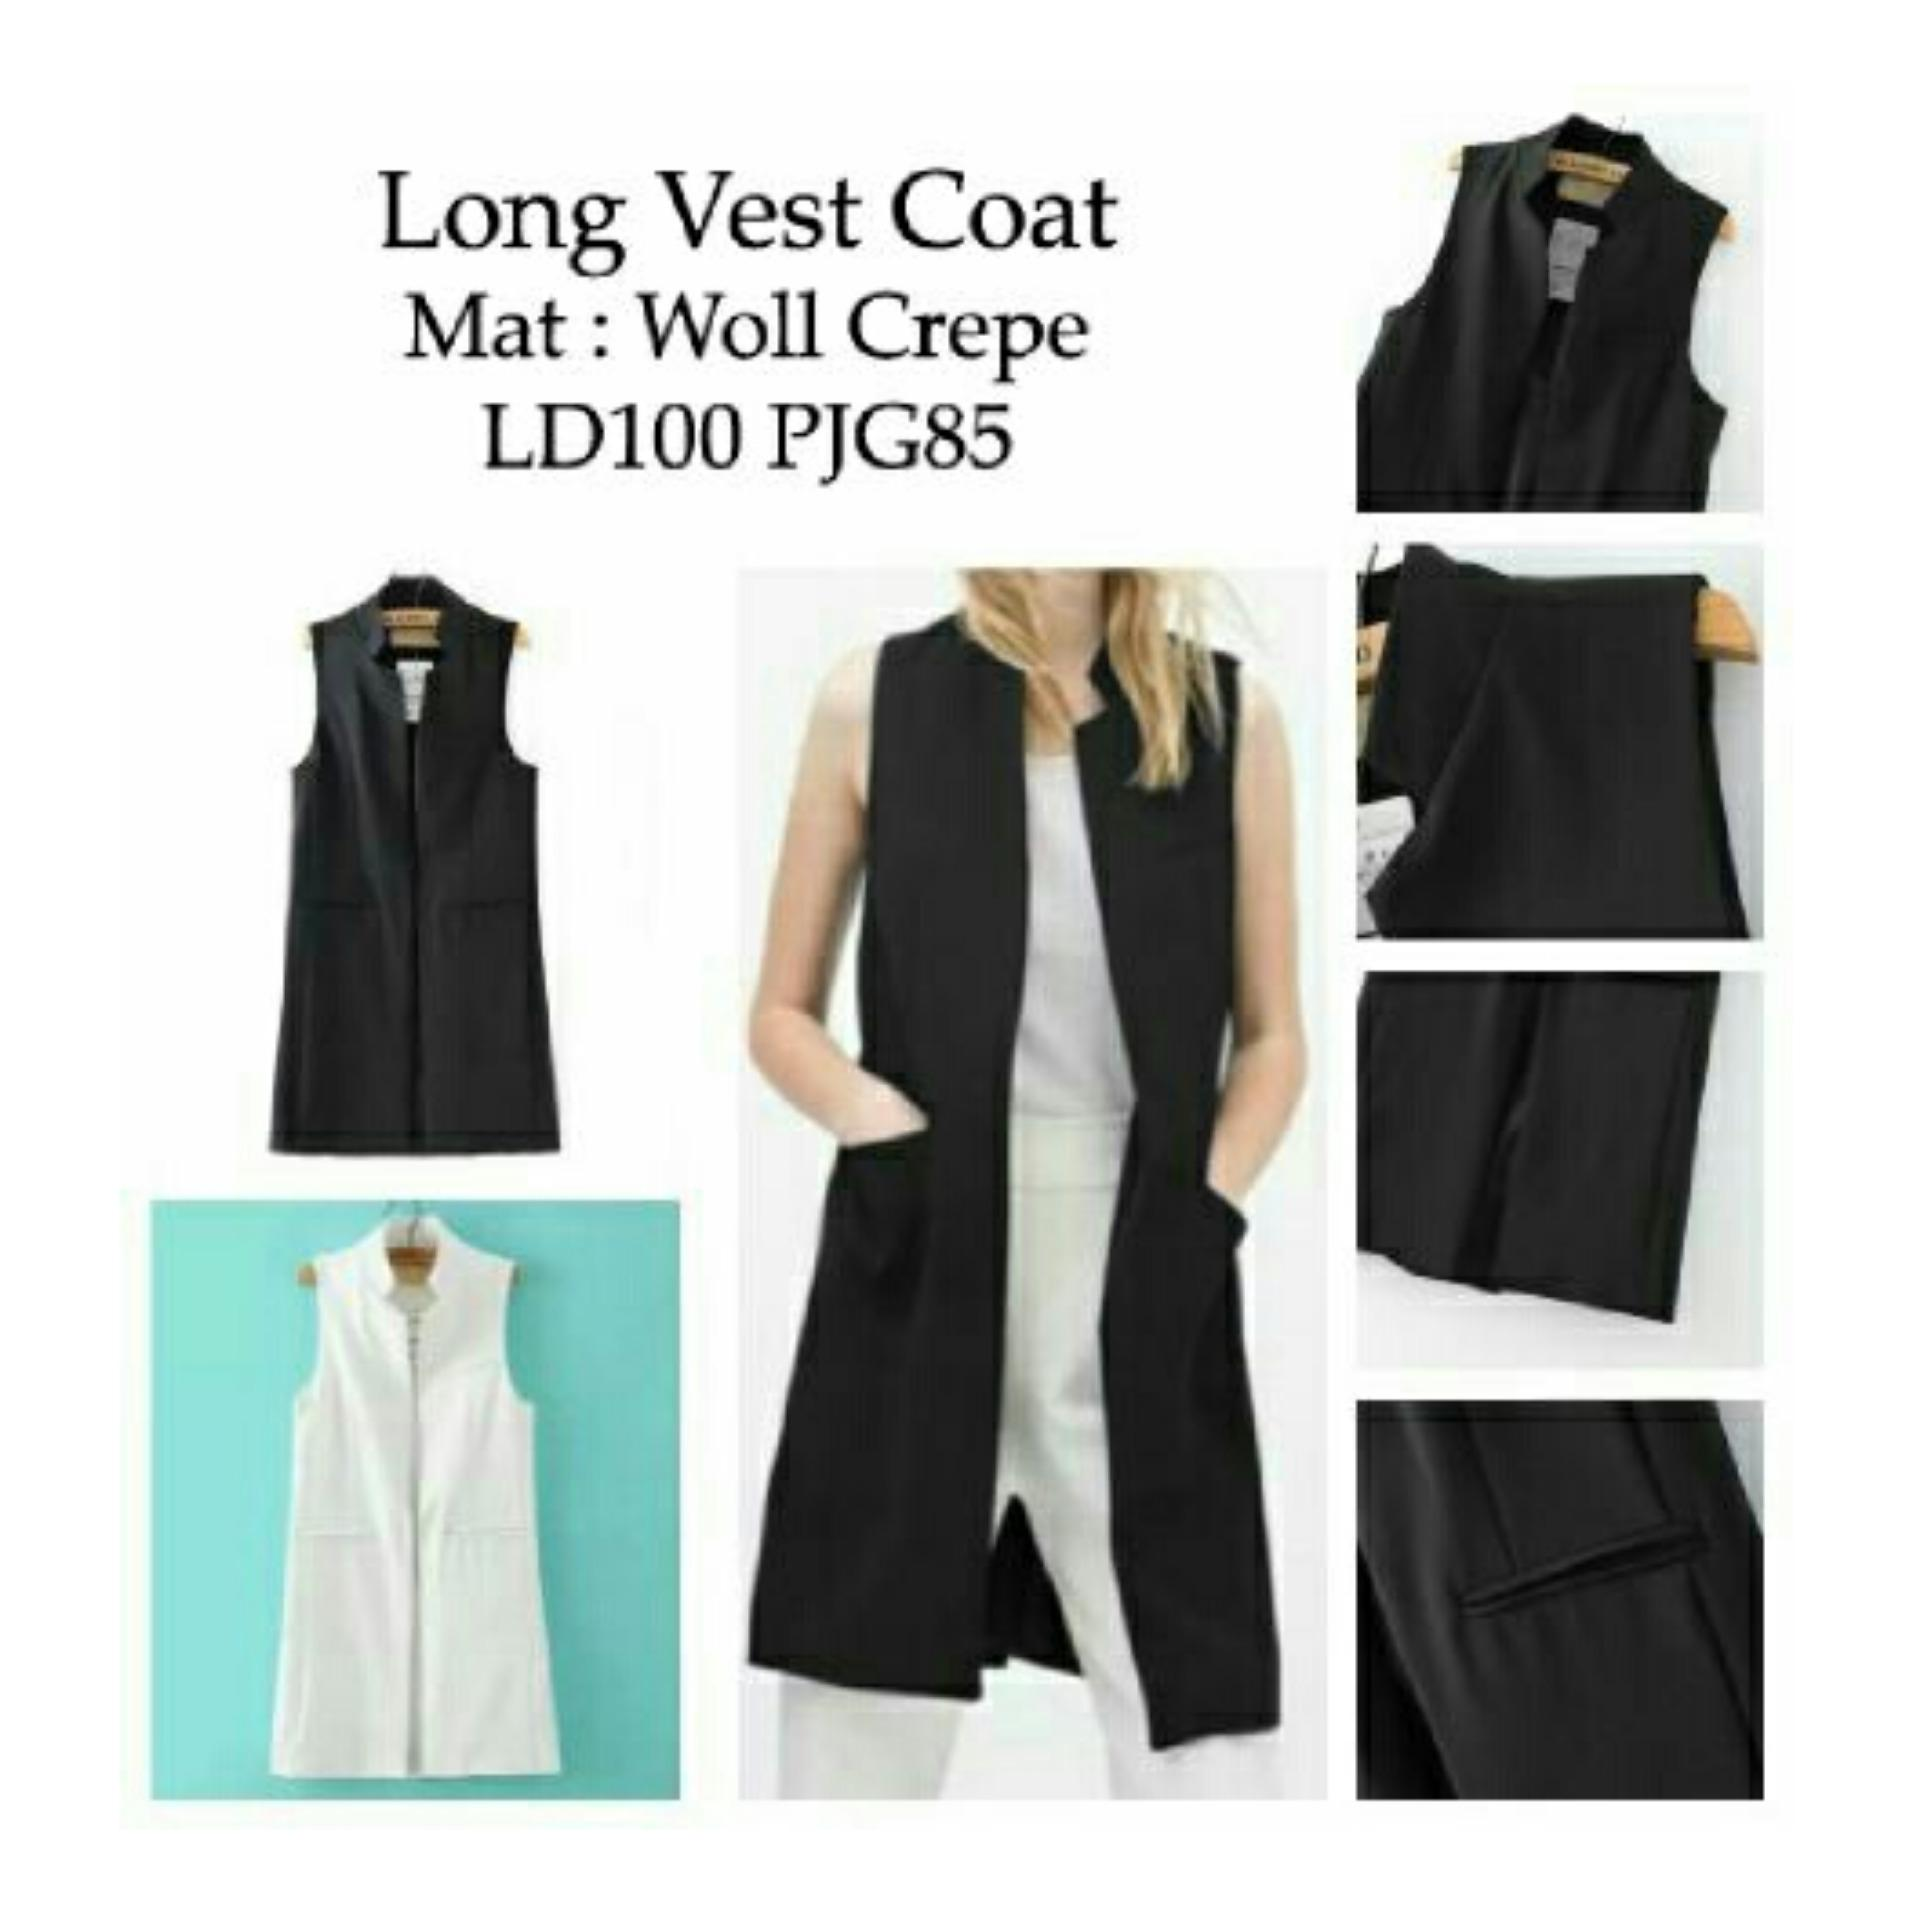 Flash Sale Ladies Fashion Blazer Panjang Wanita Vest Ignacia / Cardingan / Long Vest Coat / Jaket Rompi Wanita NR - Hitam - korea